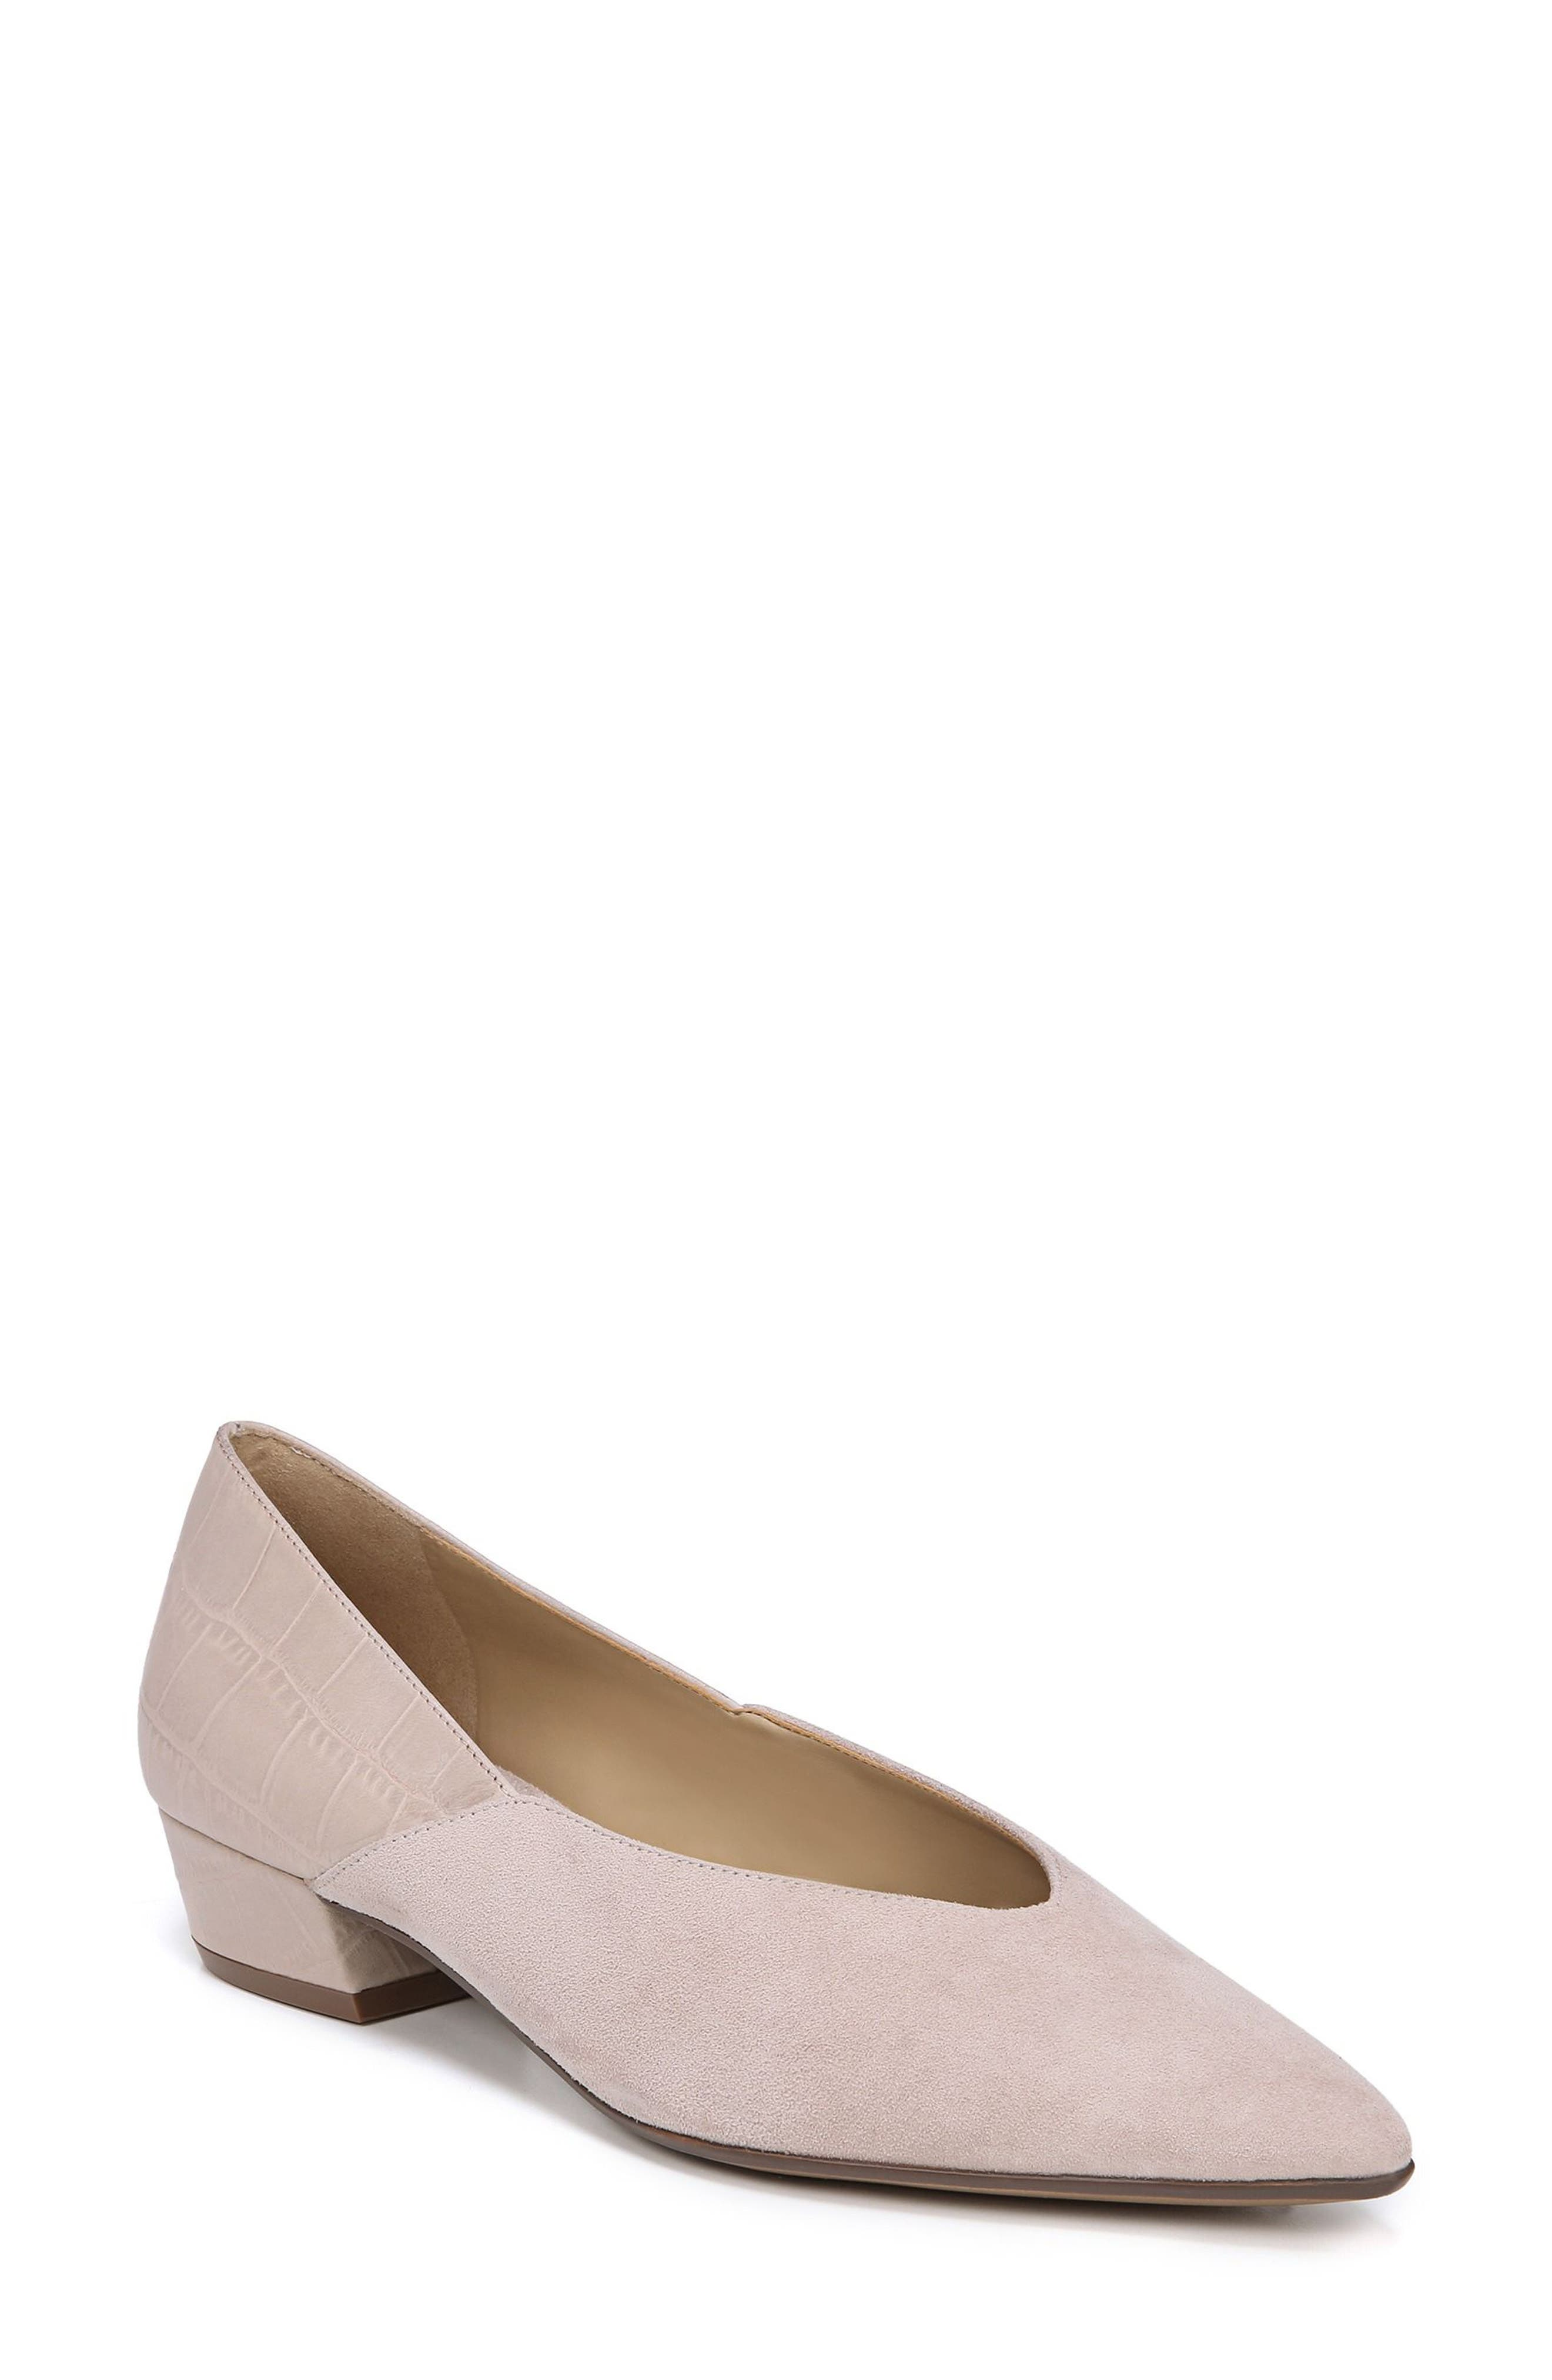 Naturalizer Betty Pump, Grey